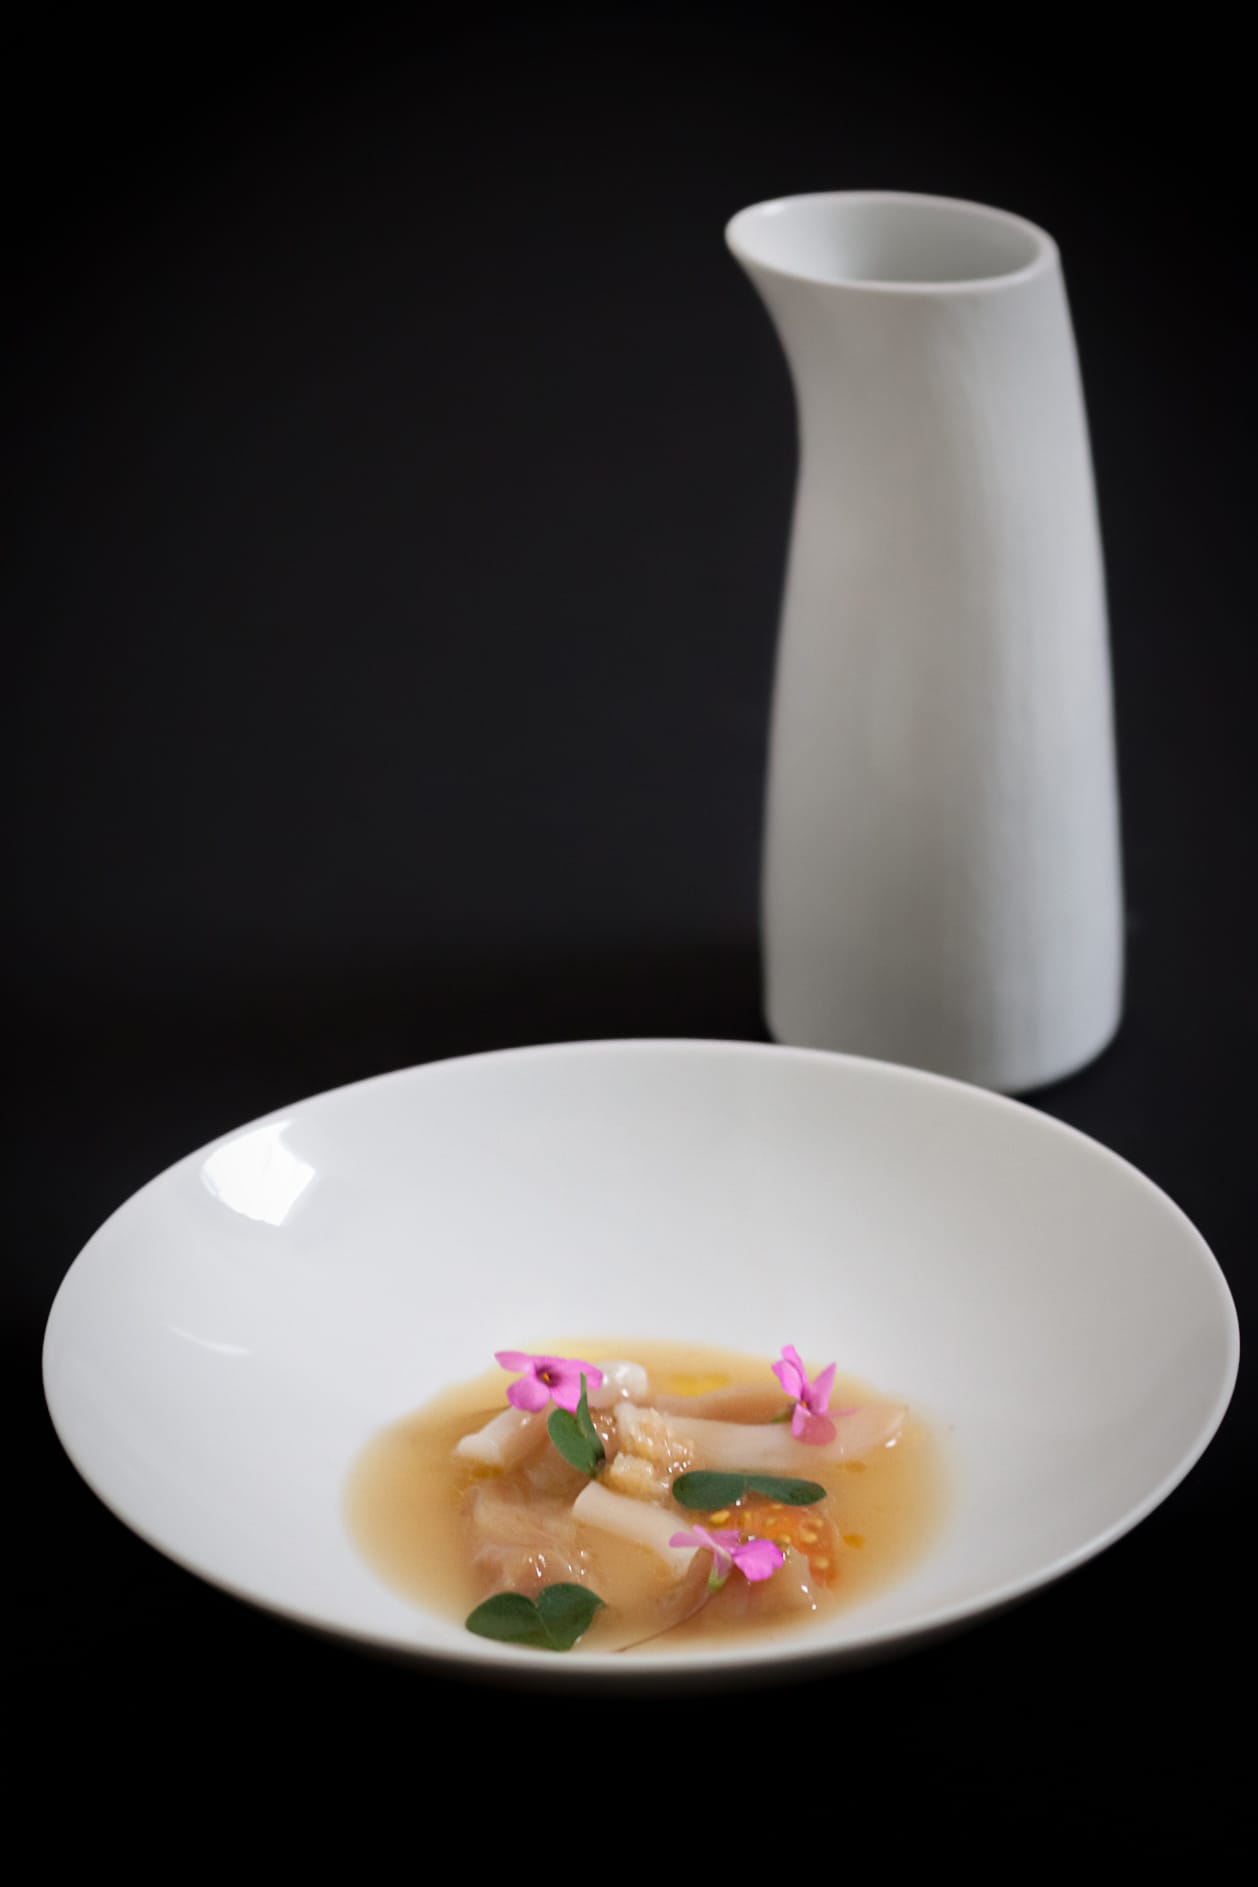 Razor clams and beef tendons. Diego López leads vanguardist and traditional cuisine bycombining his technical training with practice and innovation.